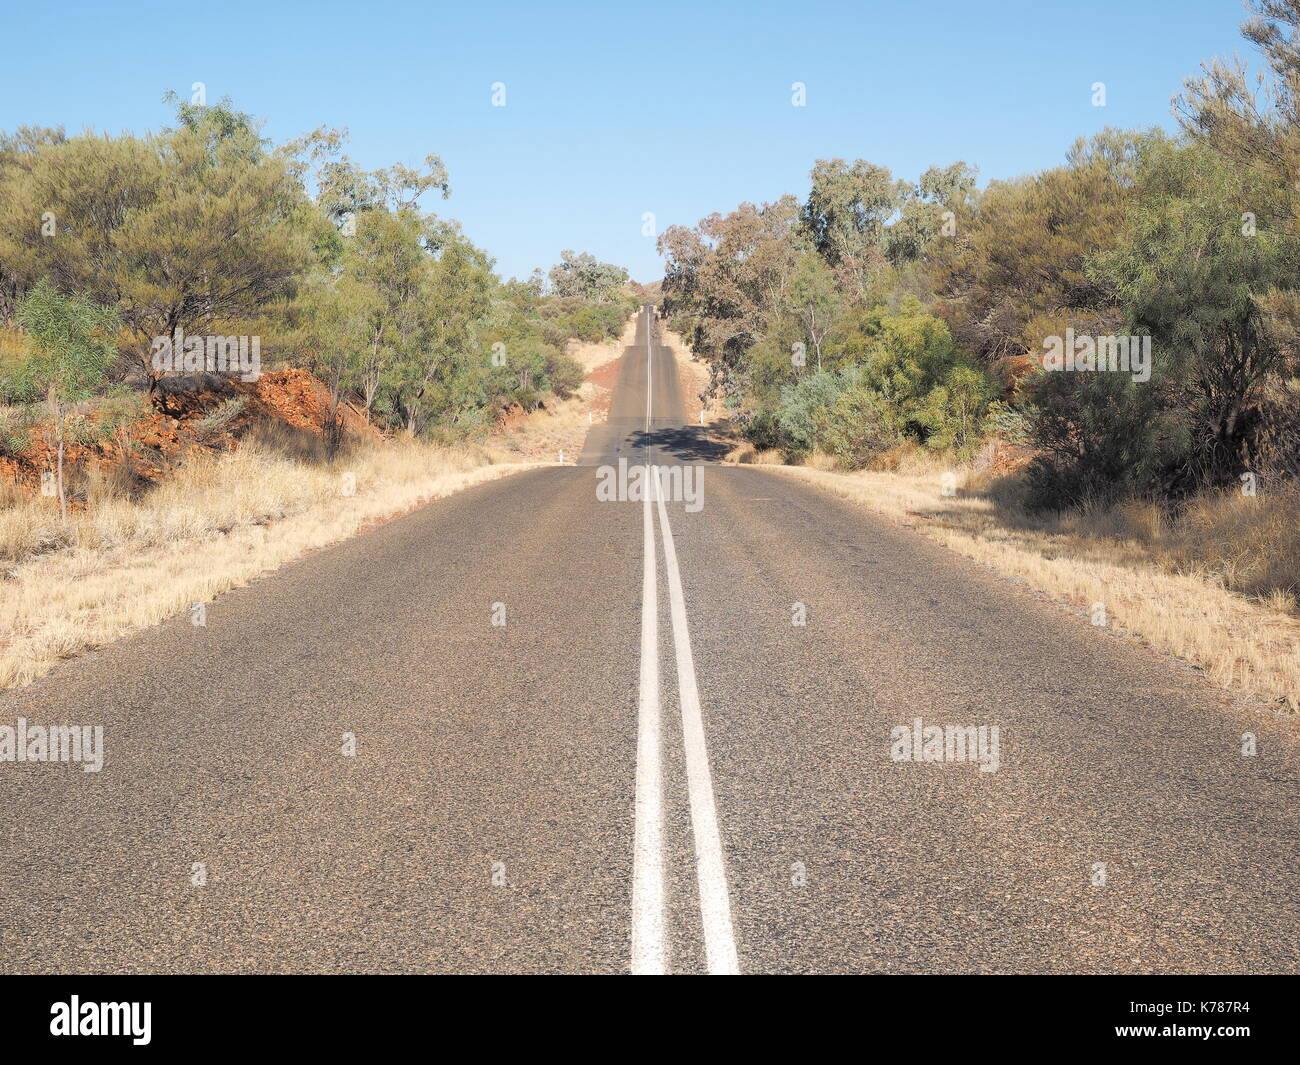 The hot bitumen road to the horizon at Larapinta Drive, west MacDonnell ranges near Alice Springs, Northern Territory, Australia 2017 - Stock Image